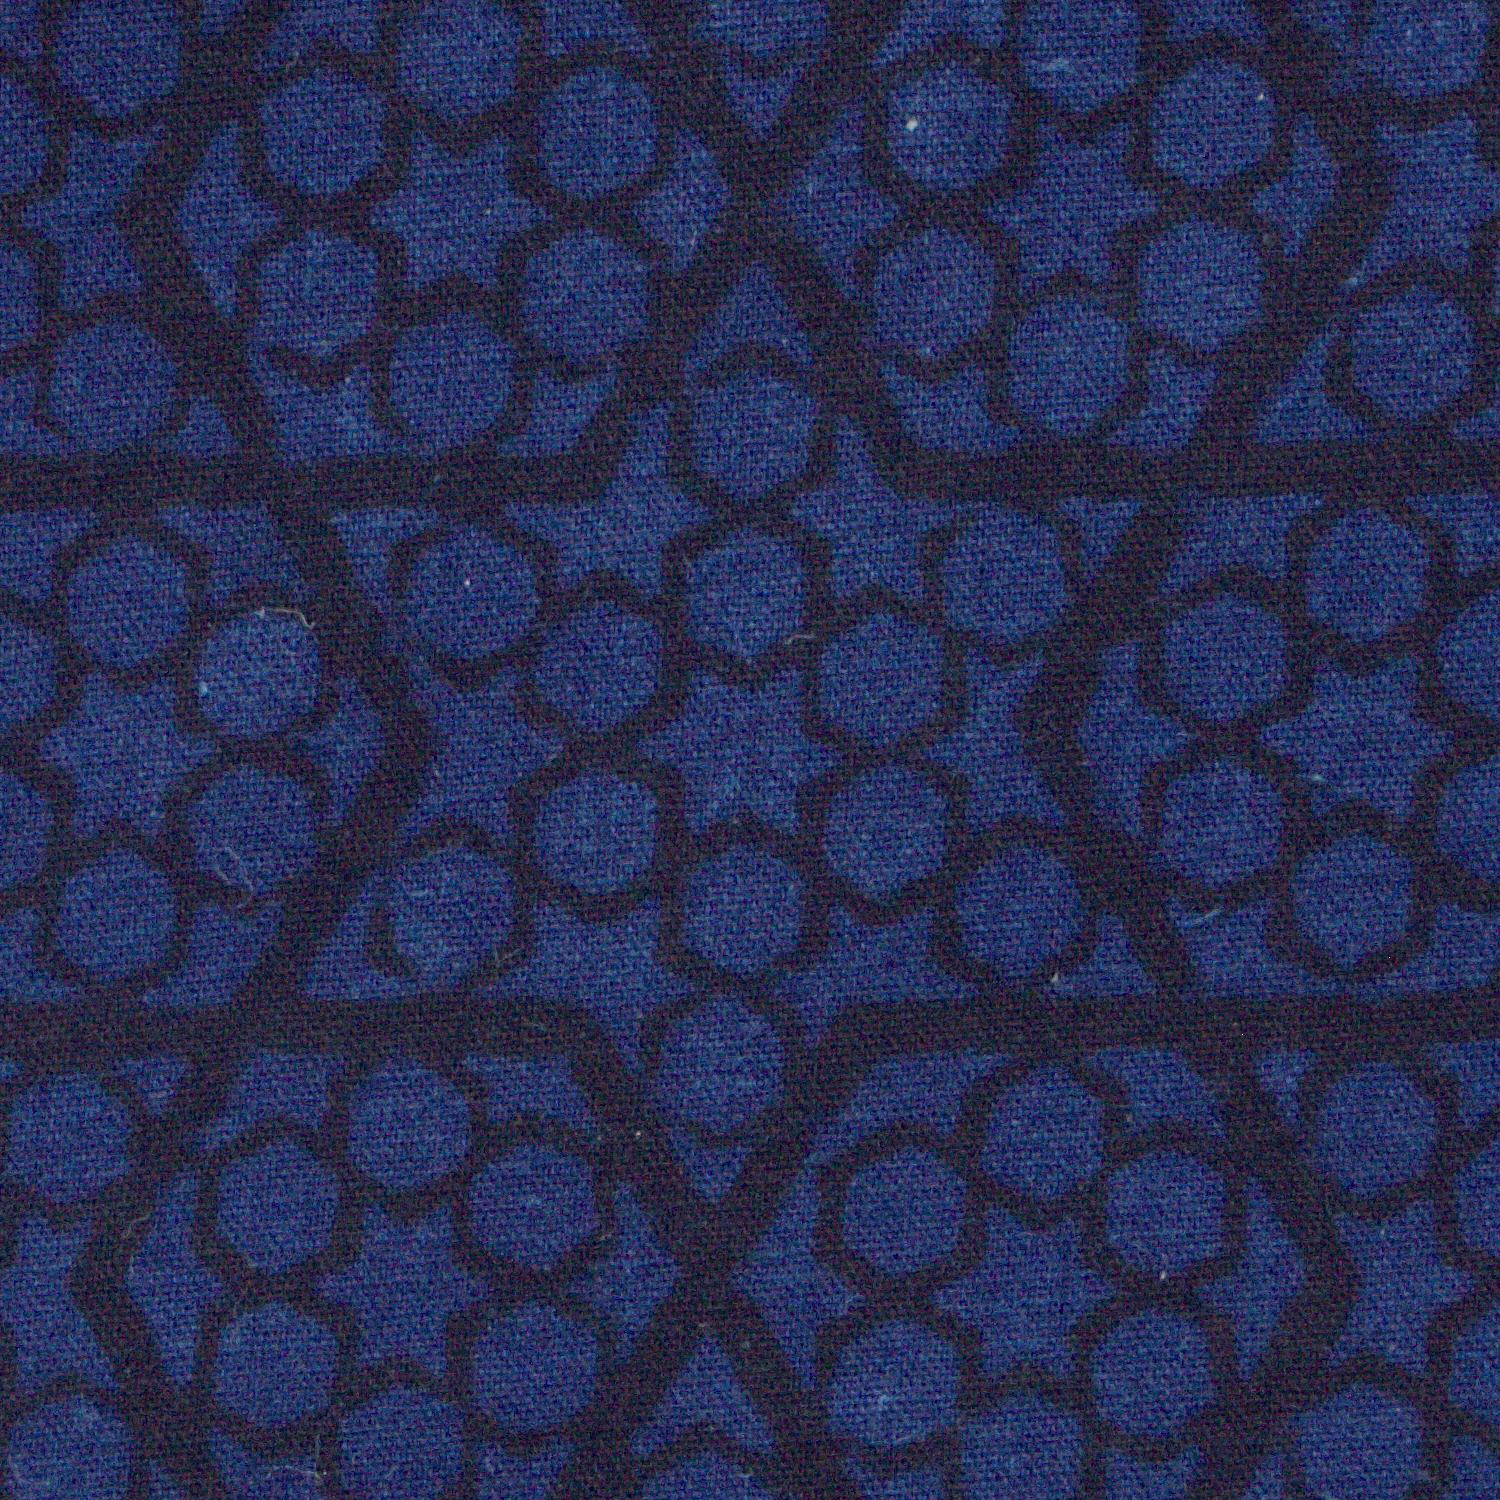 100% Block-Printed Cotton Fabric from India - Ajrak - Indigo Black Honey Comb Print - Close Up